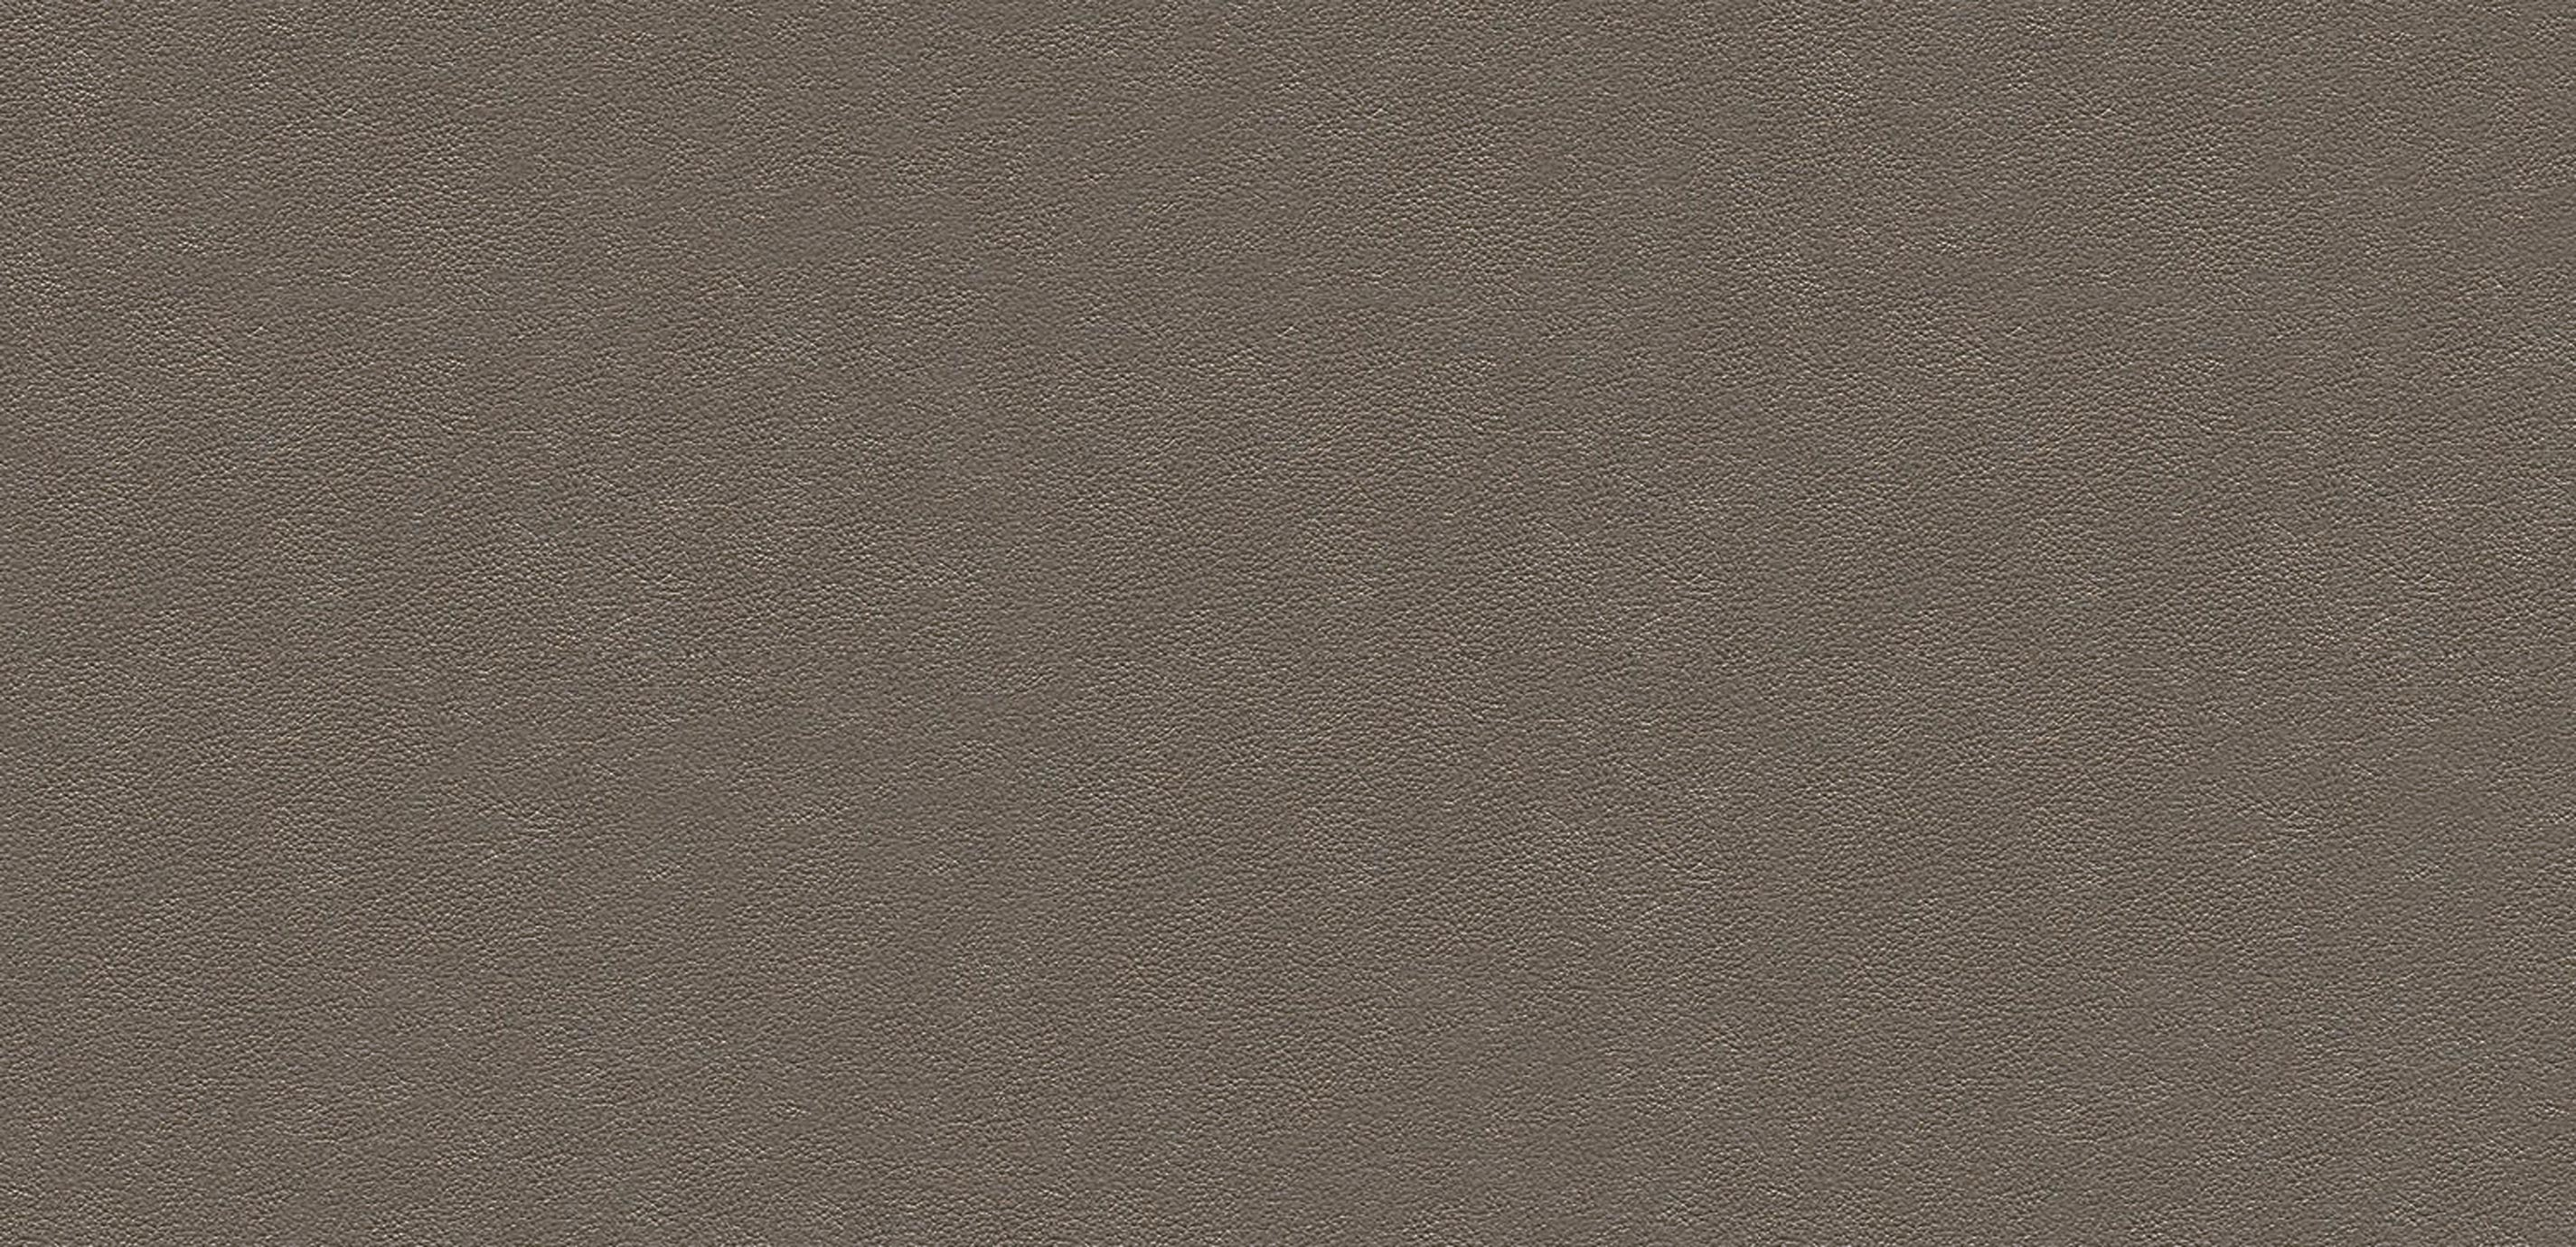 Sonora Grey Leather Swatch Ethan Allen Ethan Allen